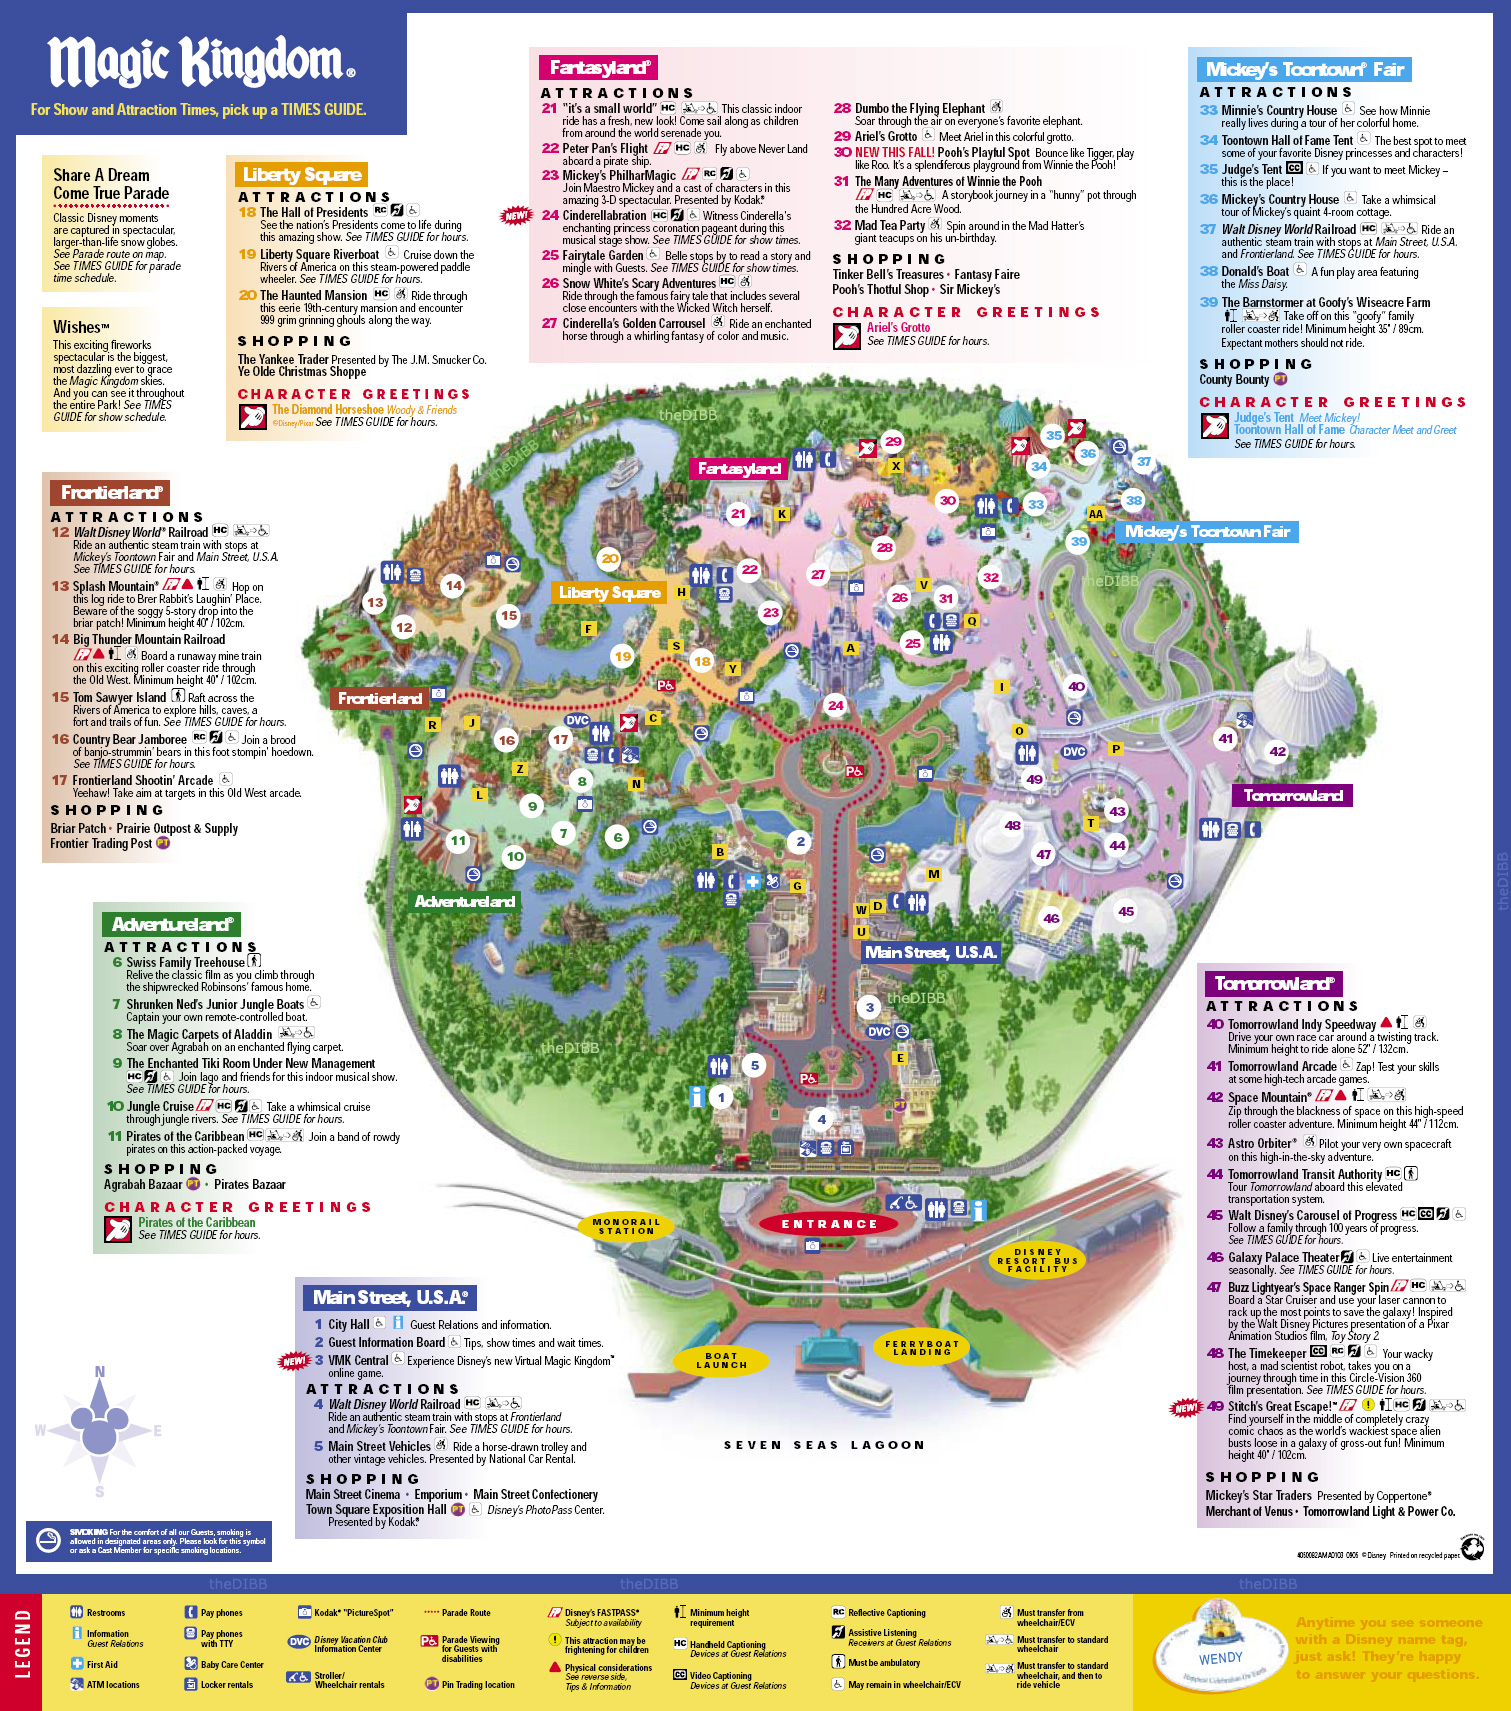 Disneys Magic Kingdom Map - Disney039s Magic Kingdom Orlando FL USA ...